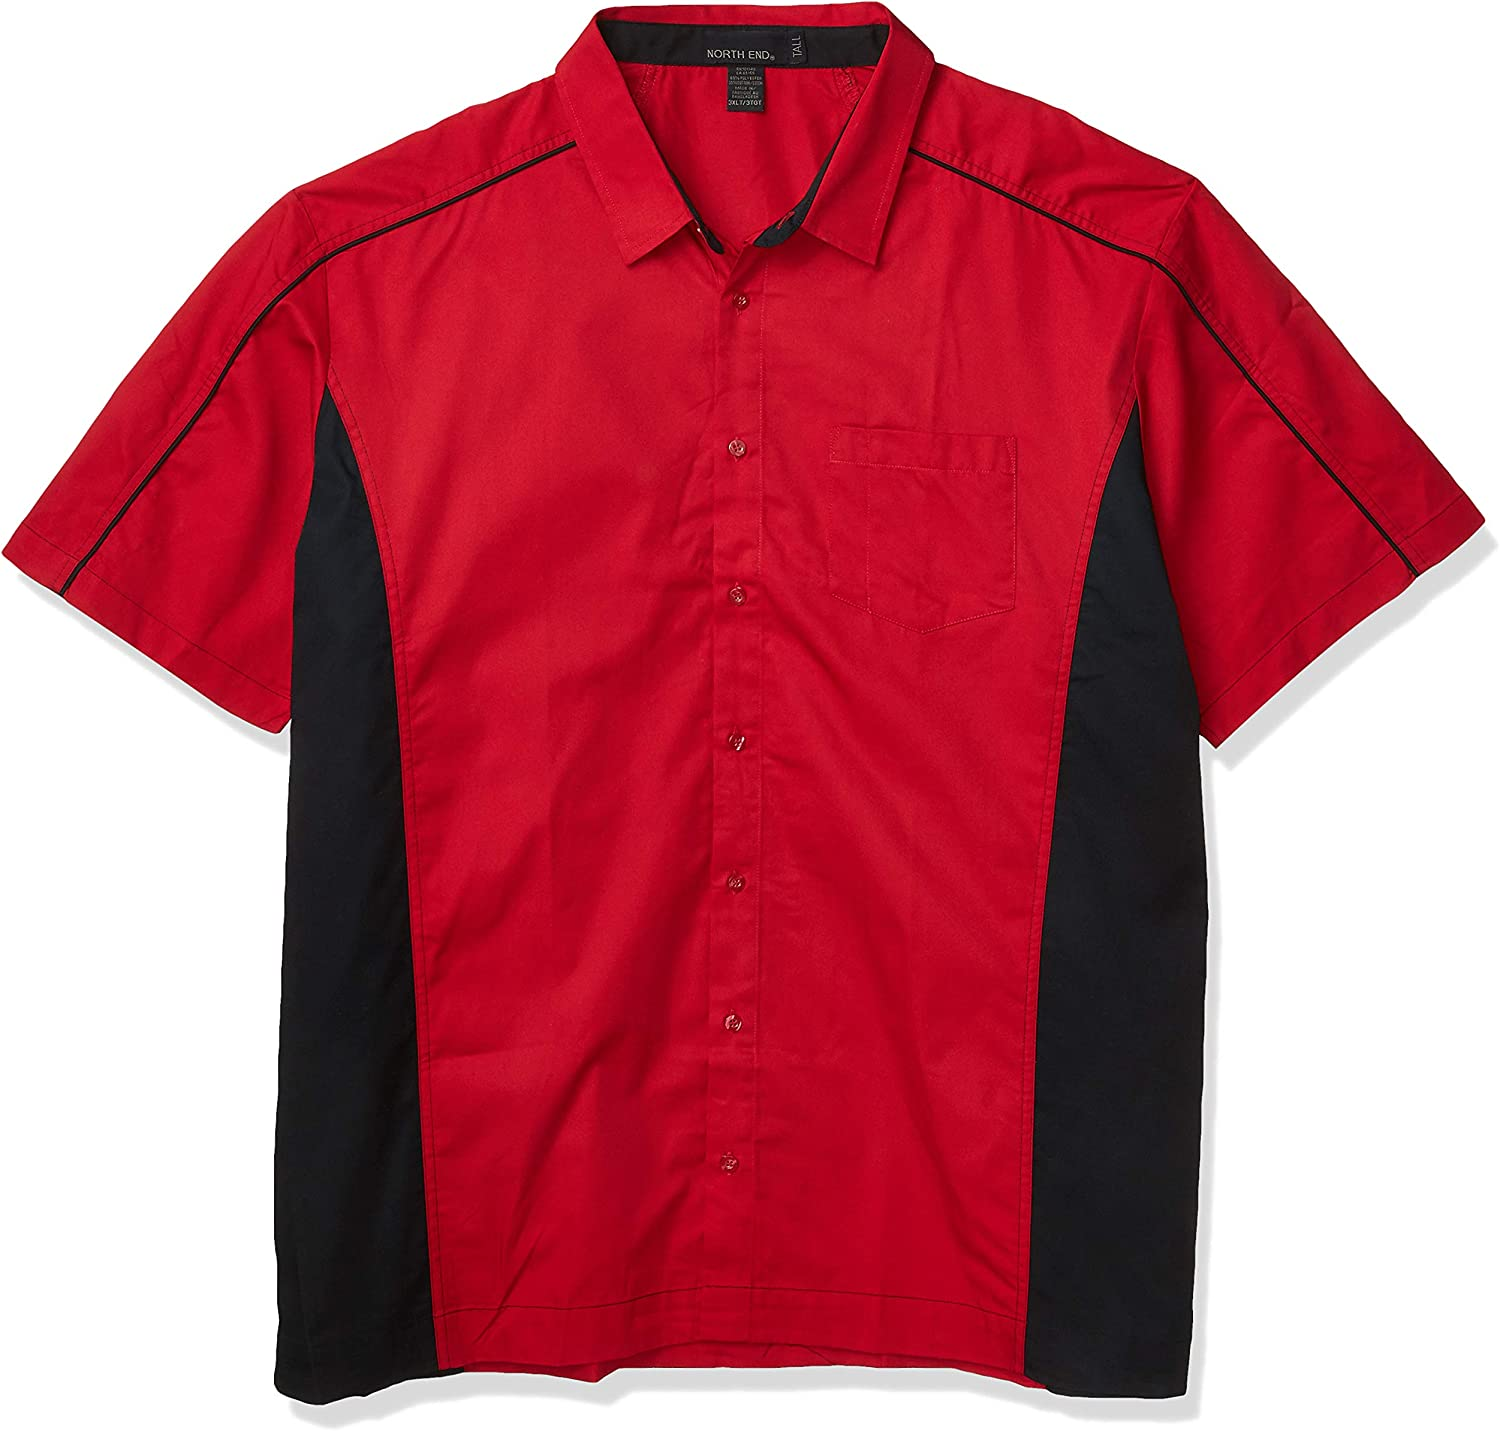 Ashe City Men's Fuse Color Block Twill Short Sleeve Button Up Shirts